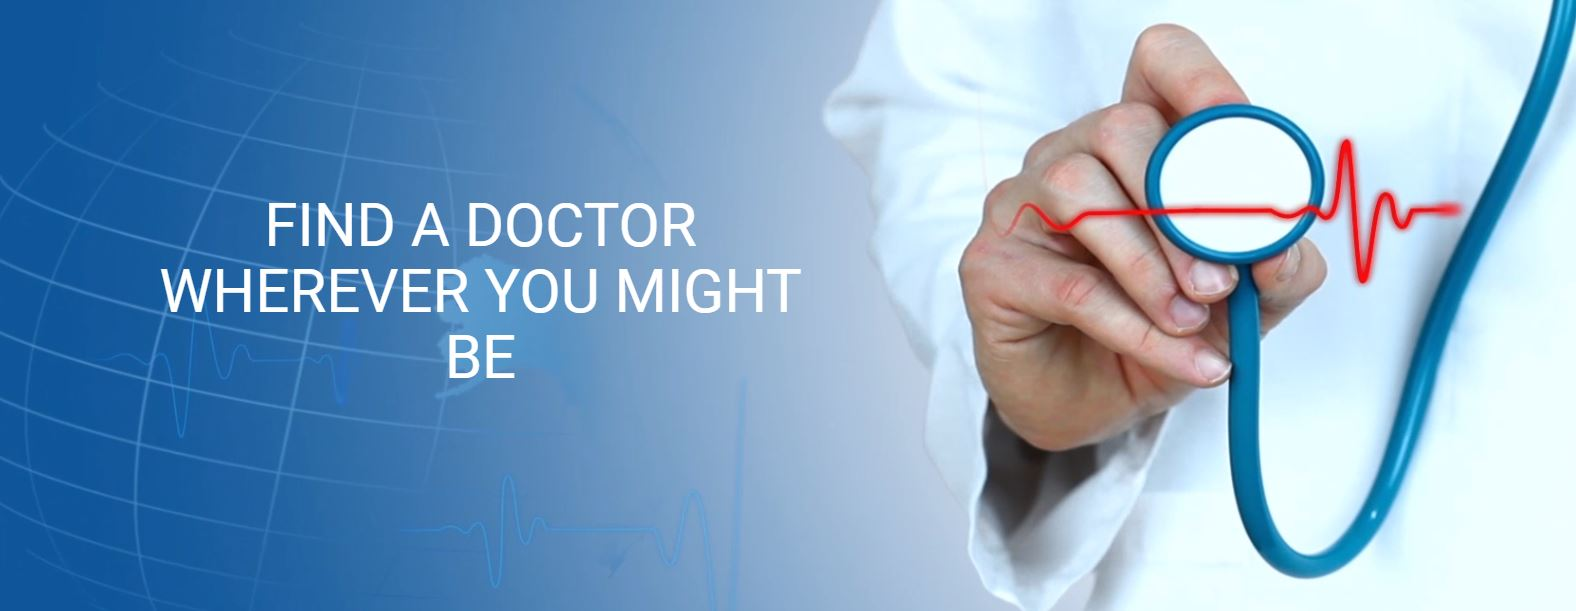 Find a Trusted Doctor wherever you might be travelling